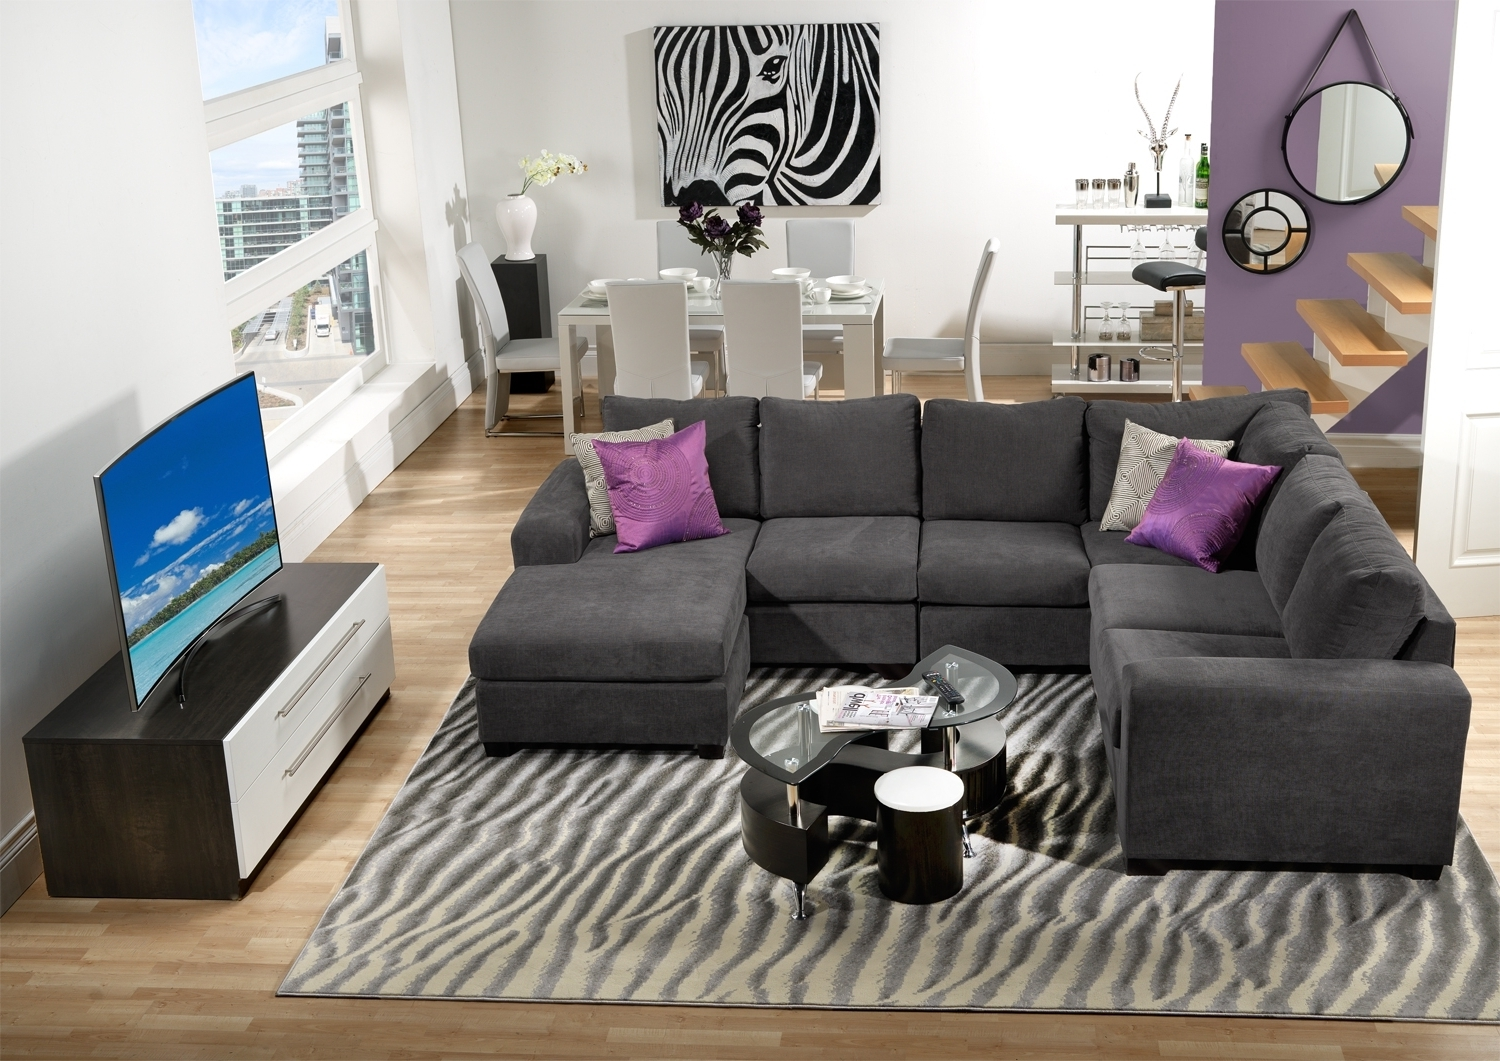 Sectional Sofas At Brampton Pertaining To Most Up To Date Danielle Upholstery 3 Pc. Sectional – Leon's (View 18 of 20)